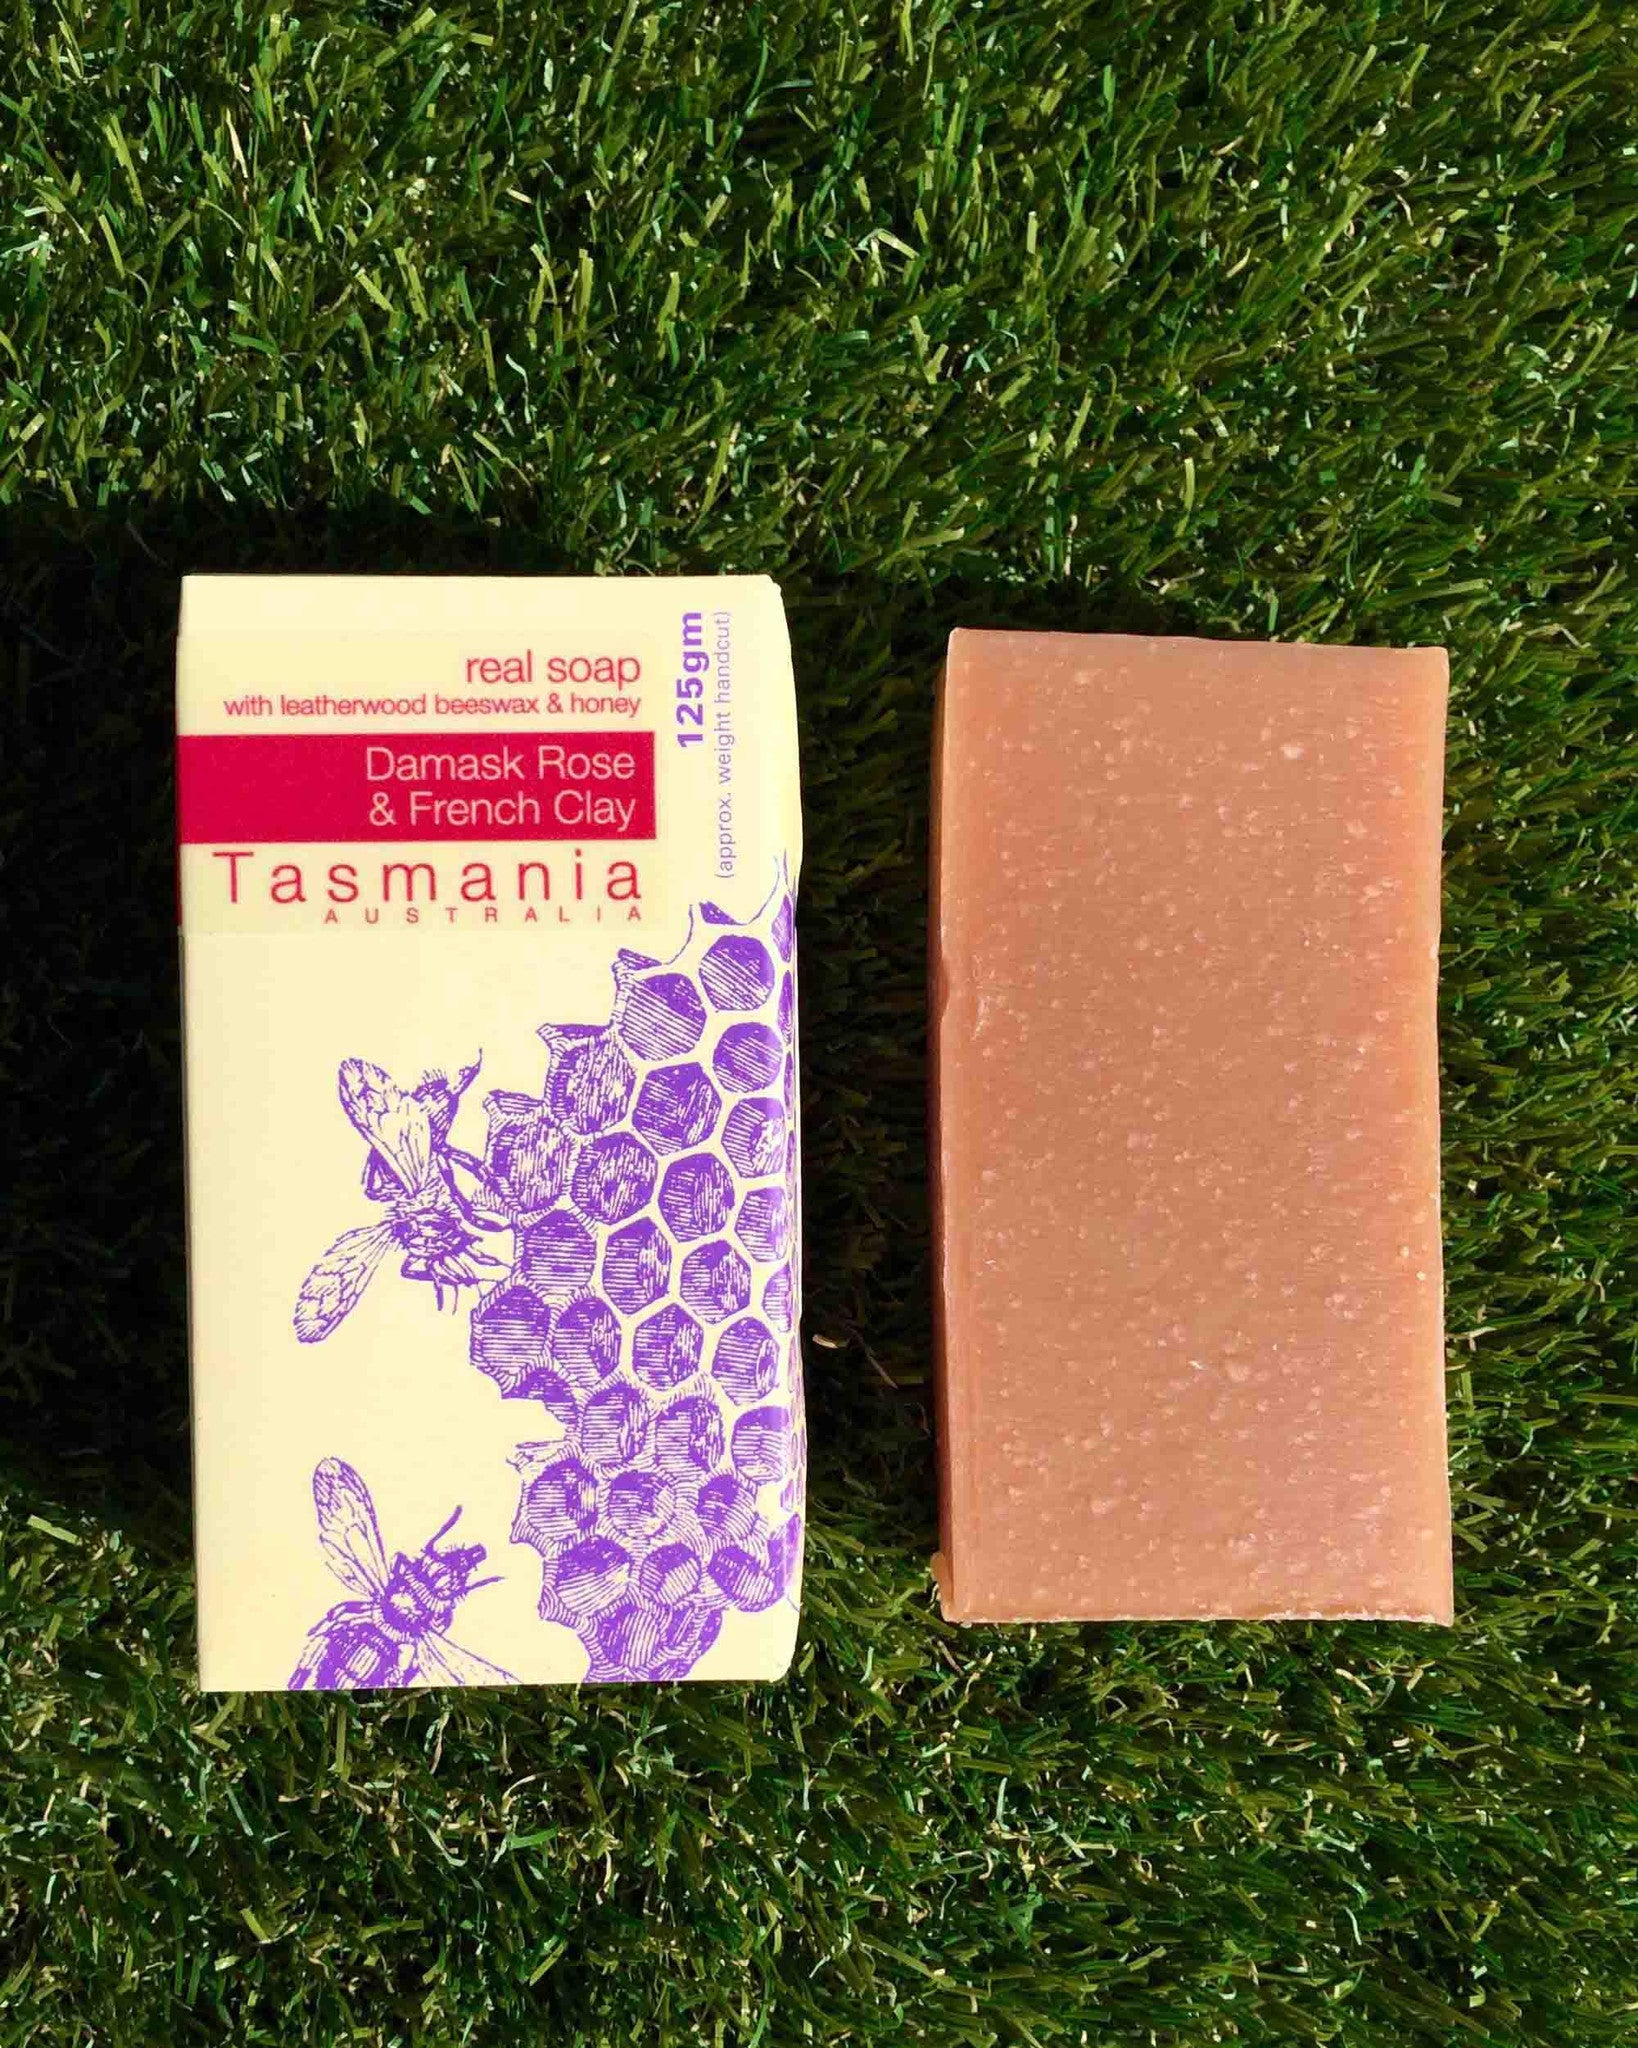 Honey Soap - Damask Rose French Clay with Leatherwood Beeswax 蜂蜜梘 - 大馬士革玫瑰礦物泥革木蜂蠟